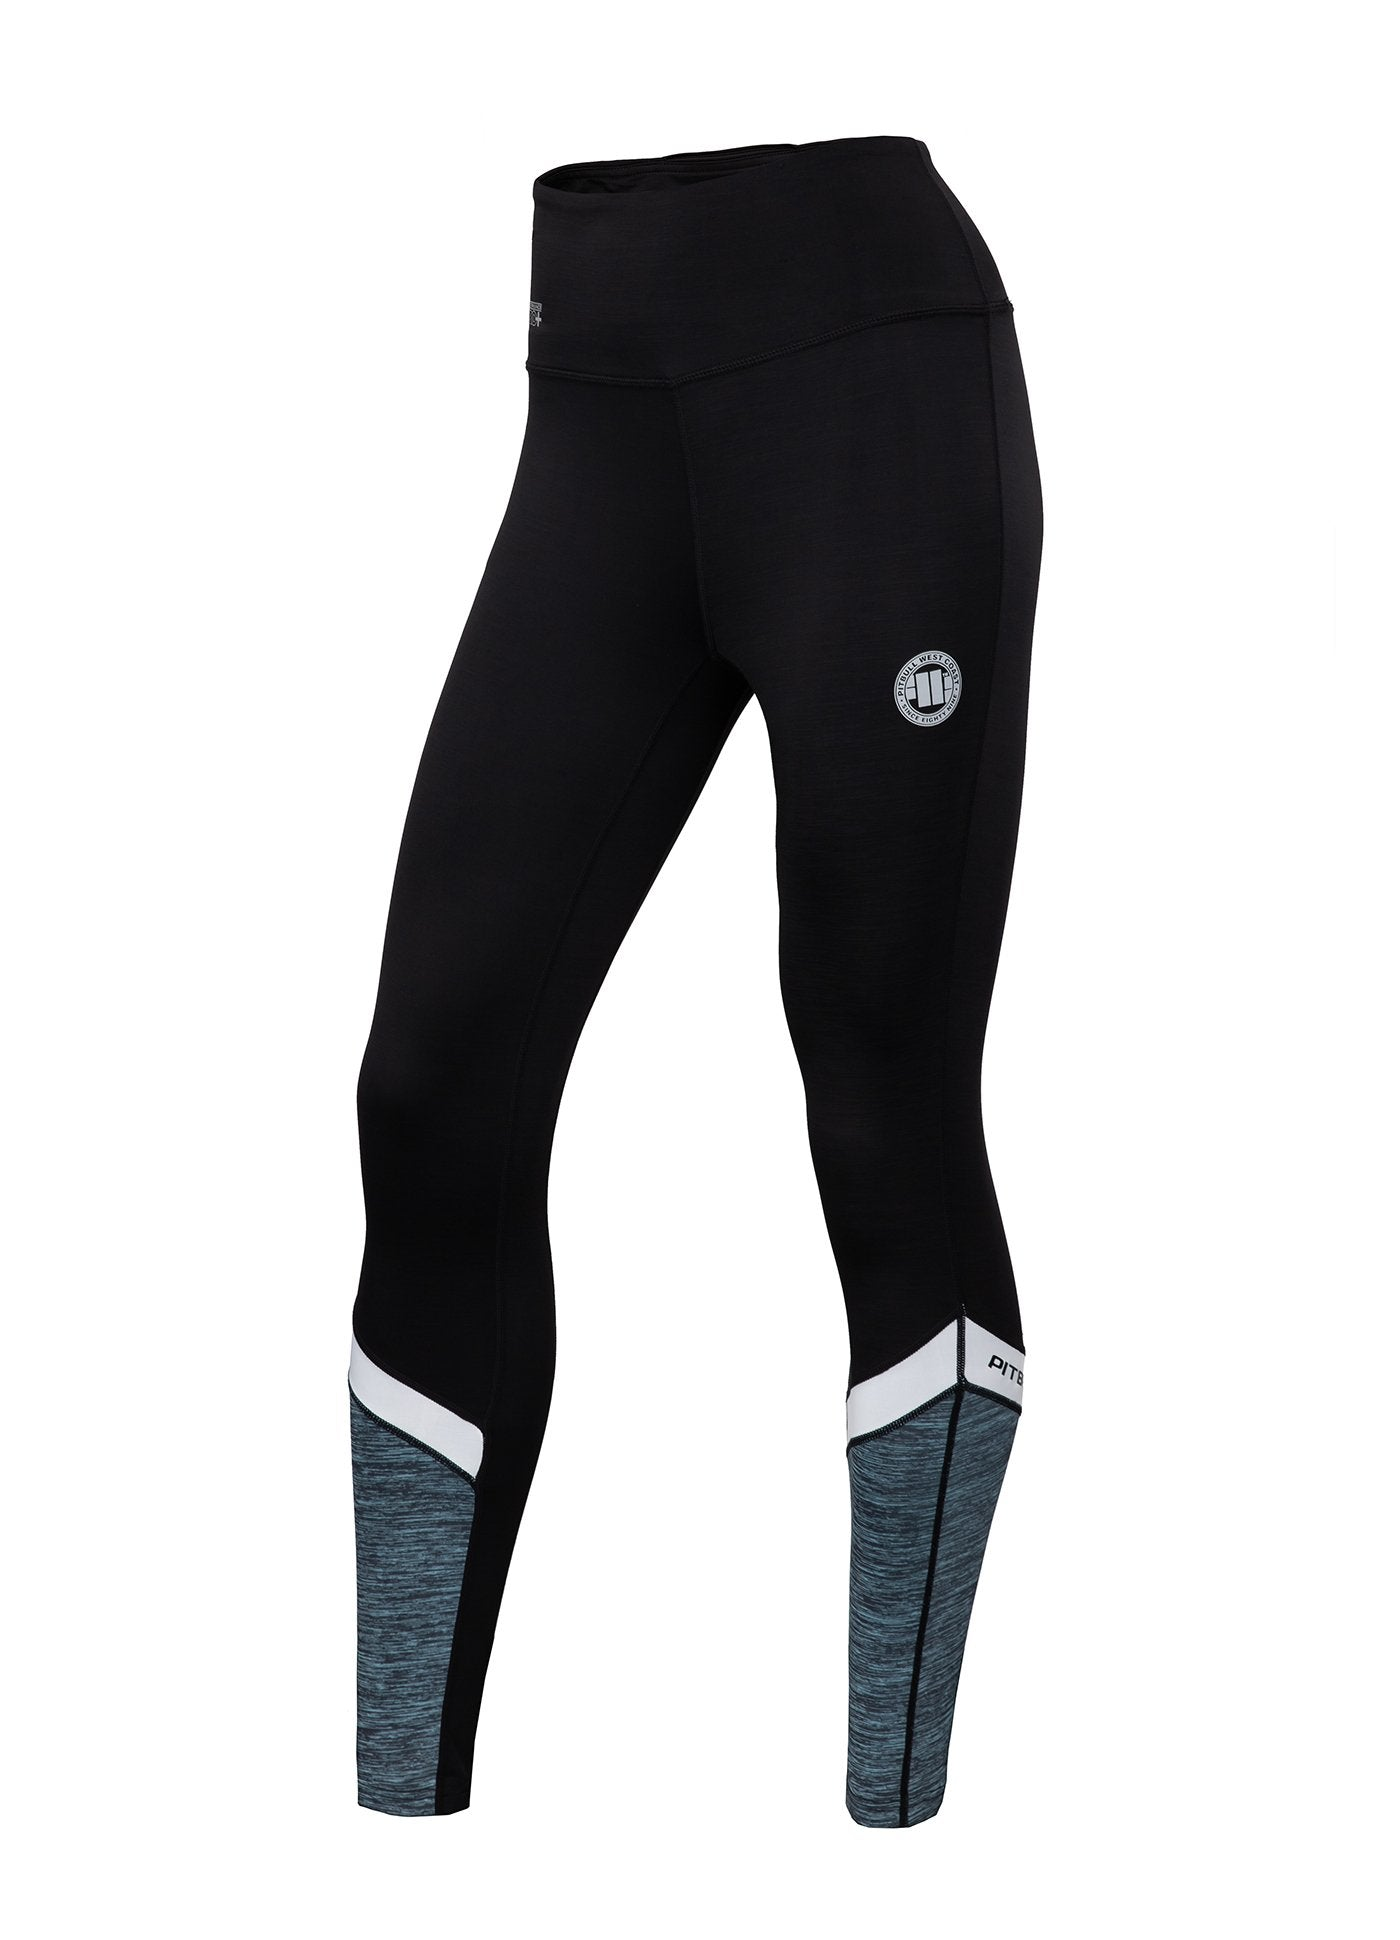 Women's Leggins Compression PRO PLUS MLG Turquoise Melange - Pitbull West Coast U.S.A.